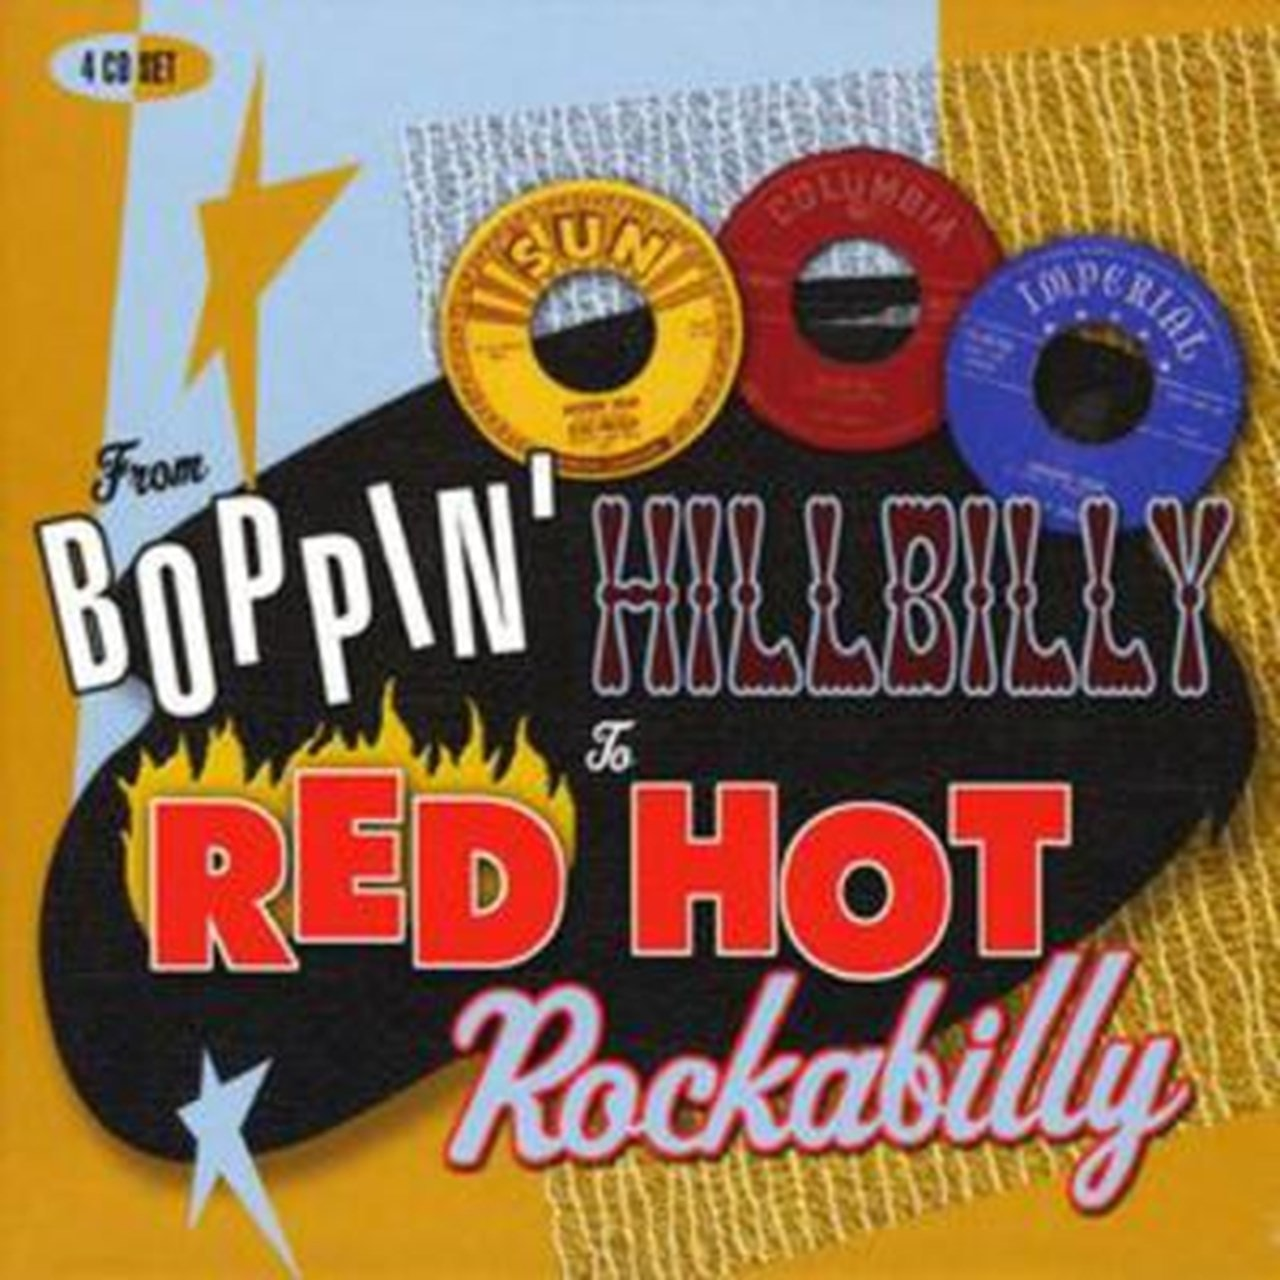 From Boppin' Hillbilly to Red - 1